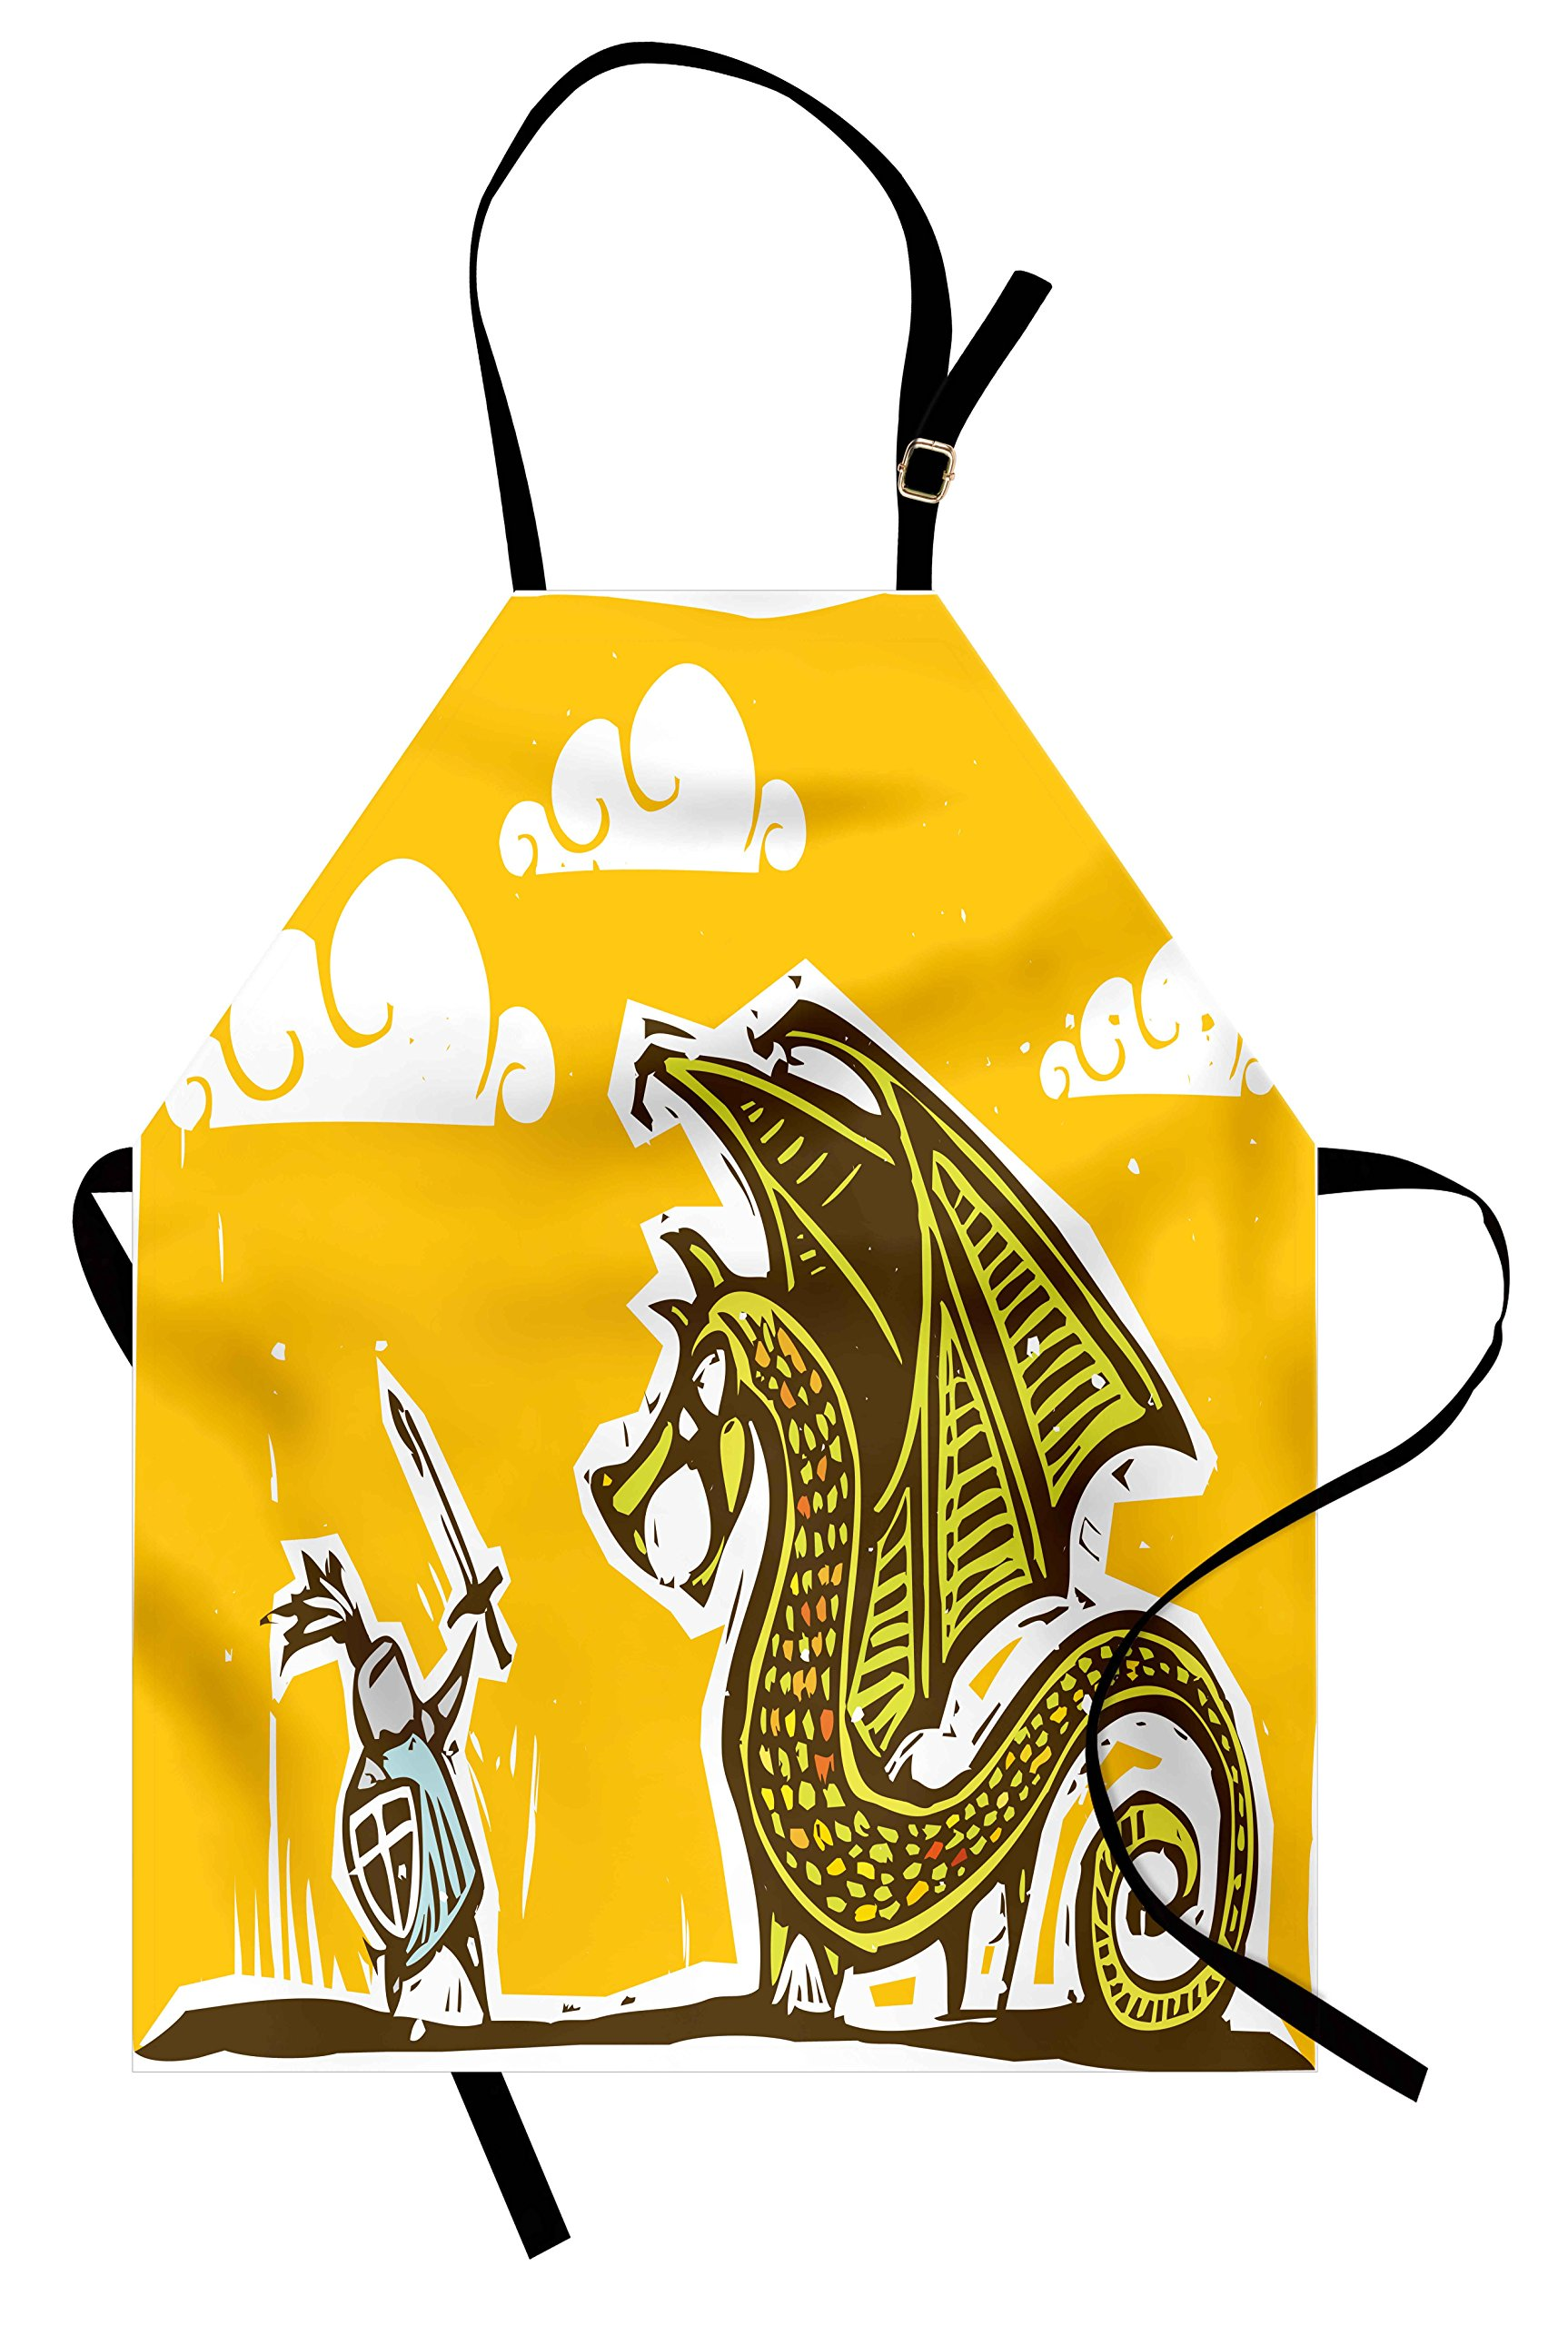 Ambesonne Dragon Apron, Knight with Shield in Steel Armour Against Dragon with Wings Cartoon Middle Ages Design, Unisex Kitchen Bib Apron with Adjustable Neck for Cooking Baking Gardening, Yellow